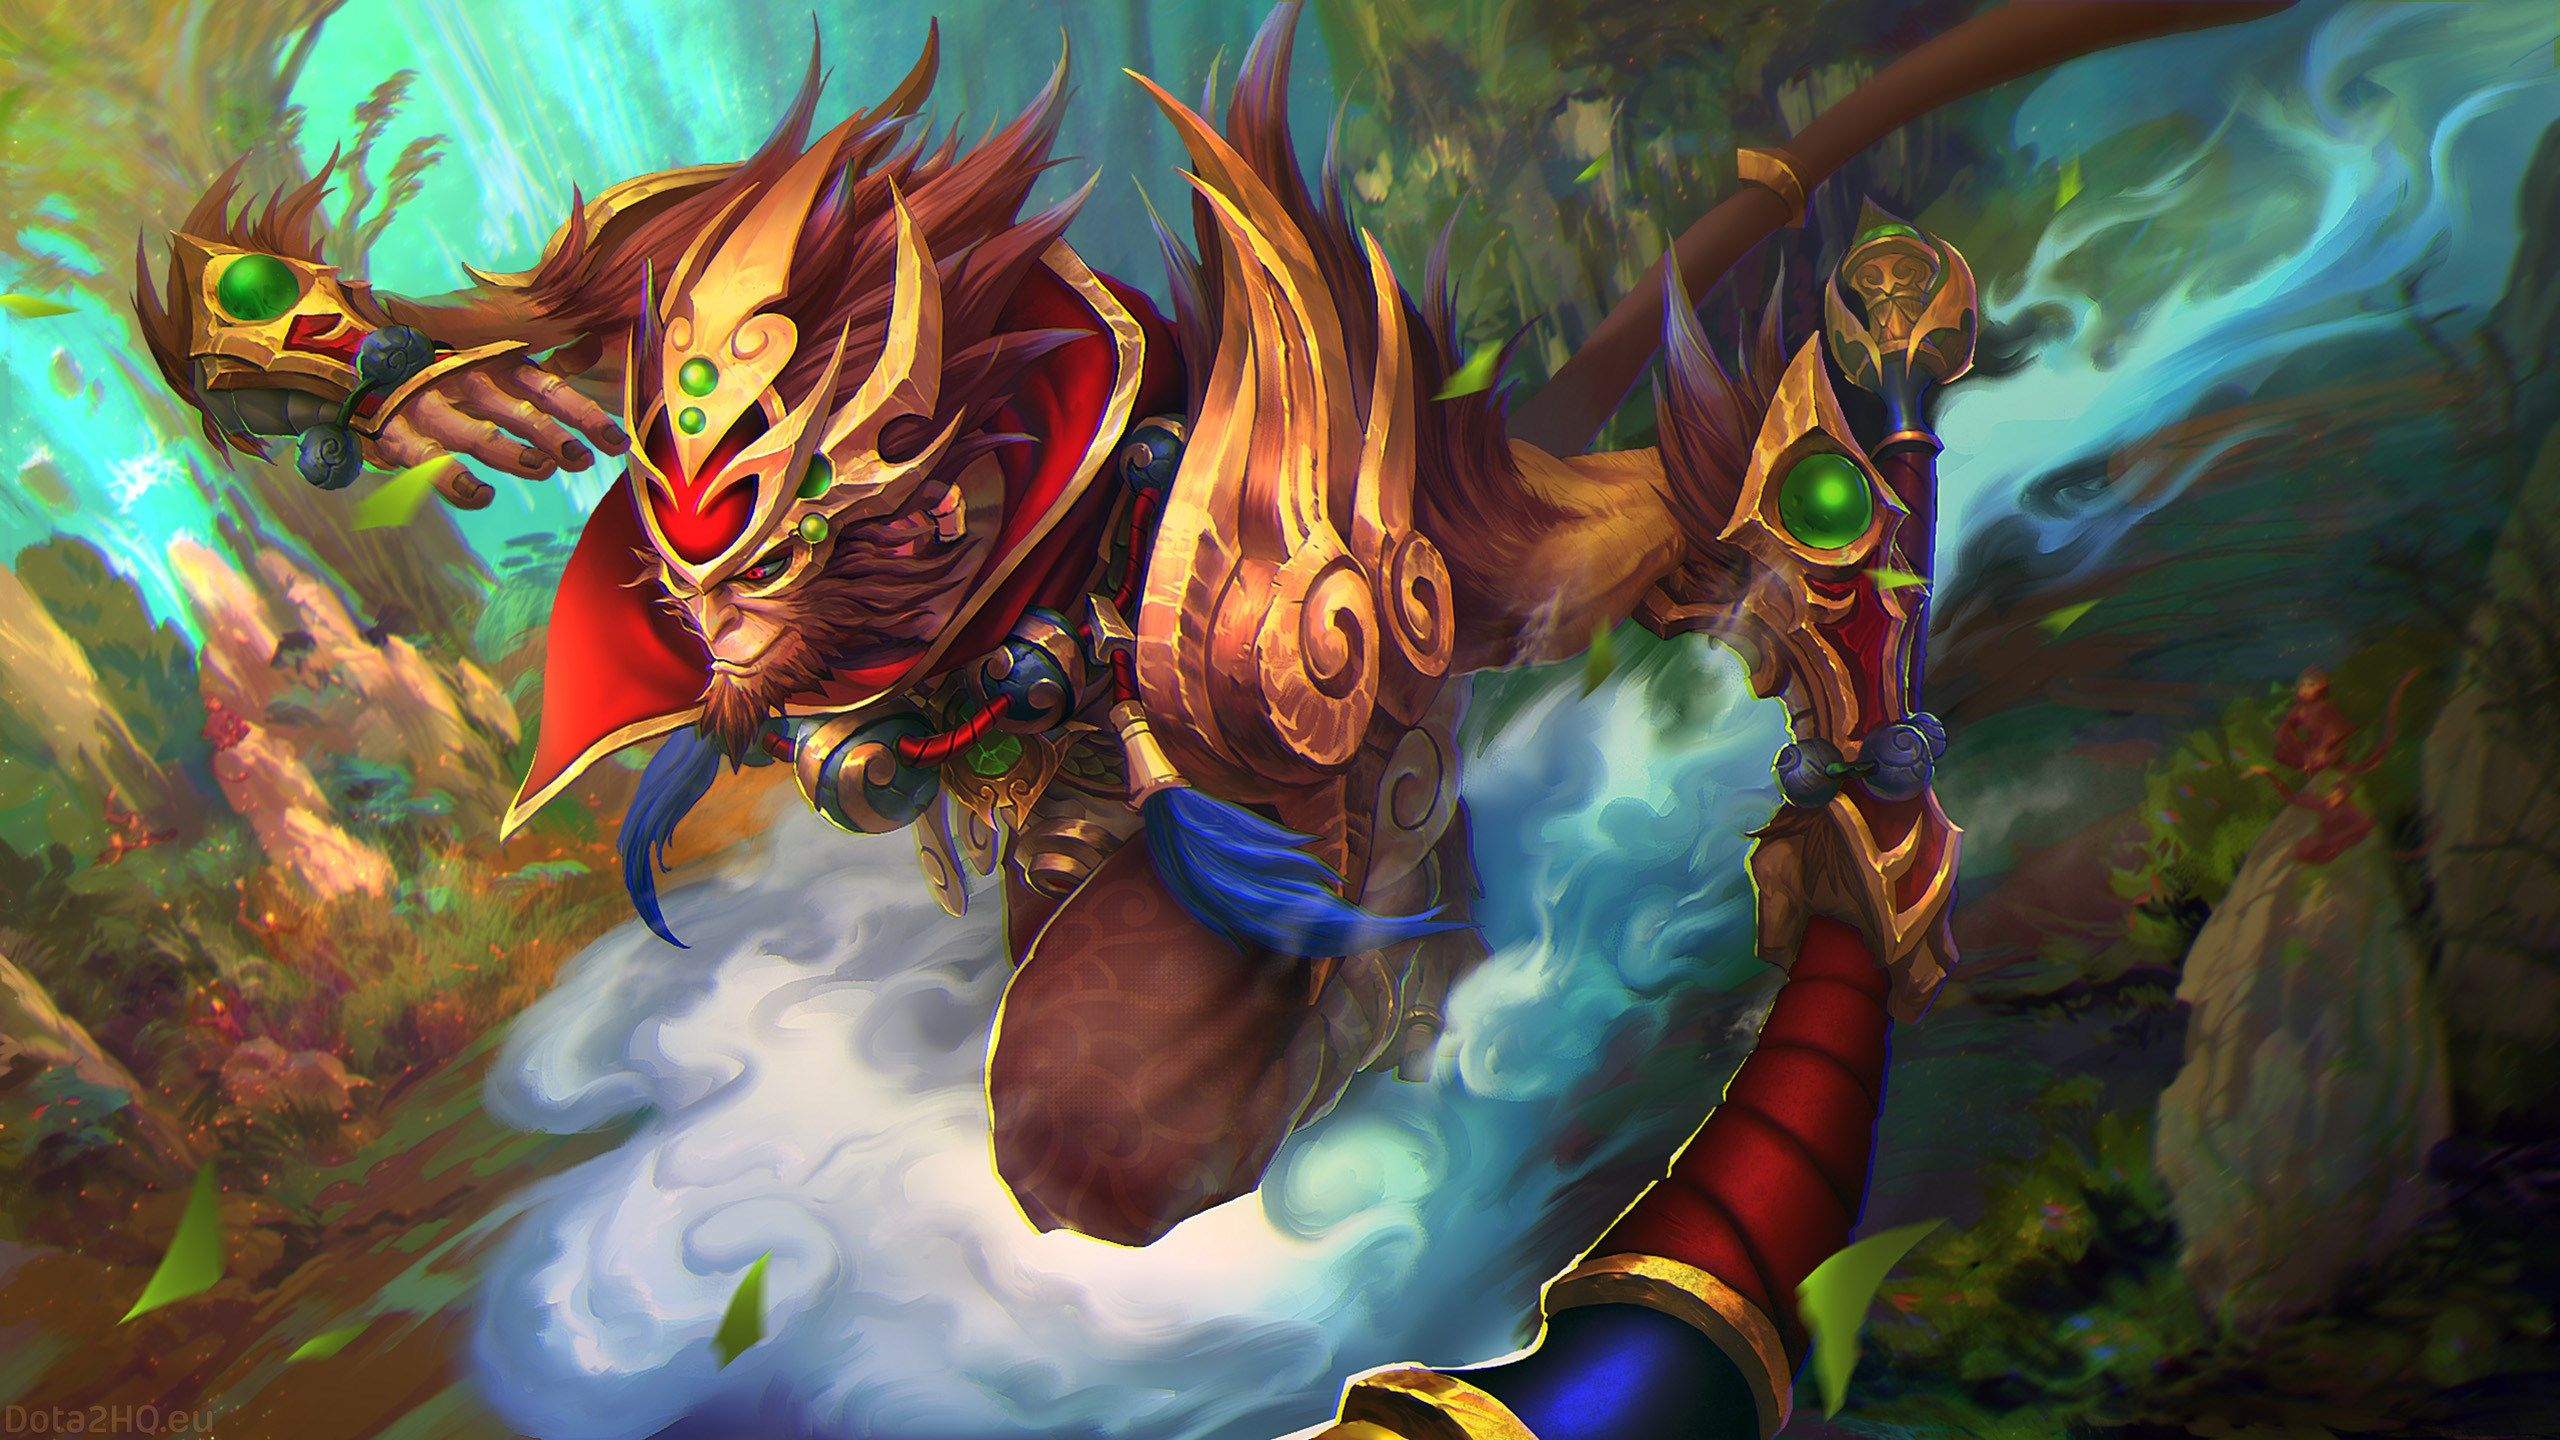 2560x1440 Monkey King Dota 2 Wallpaper Hd